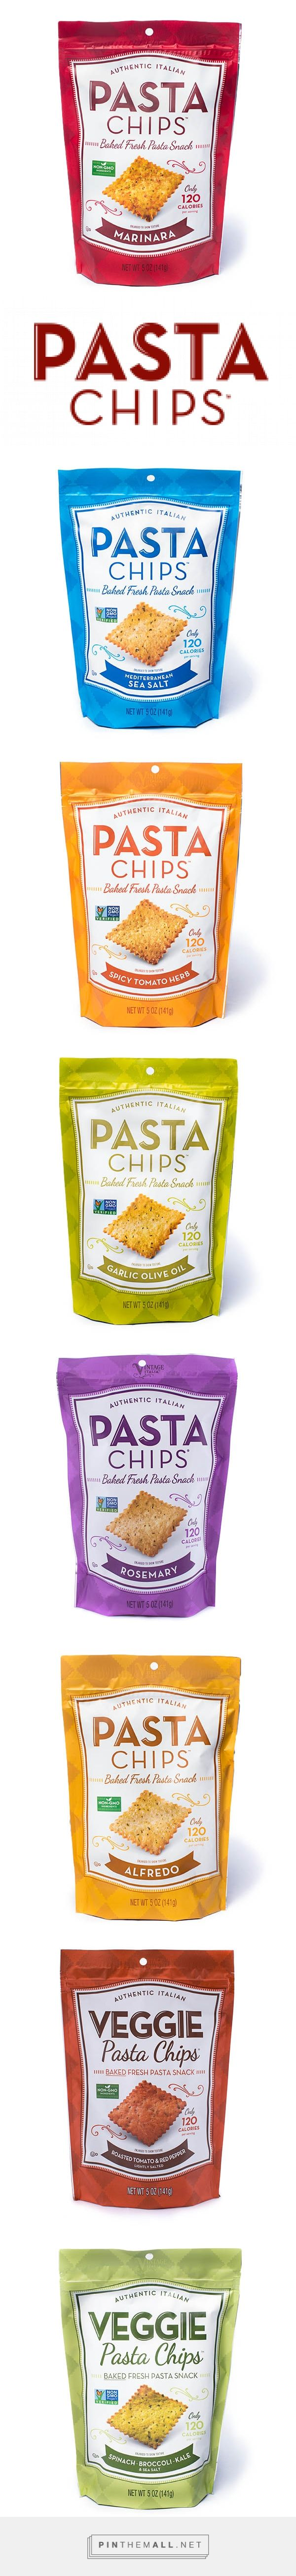 Pasta Chips - Baked Fresh Pasta Snack. Pin curated by #SFields99 #packaging #design #inspiration #ideas #snacks #veggie #chips #pasta